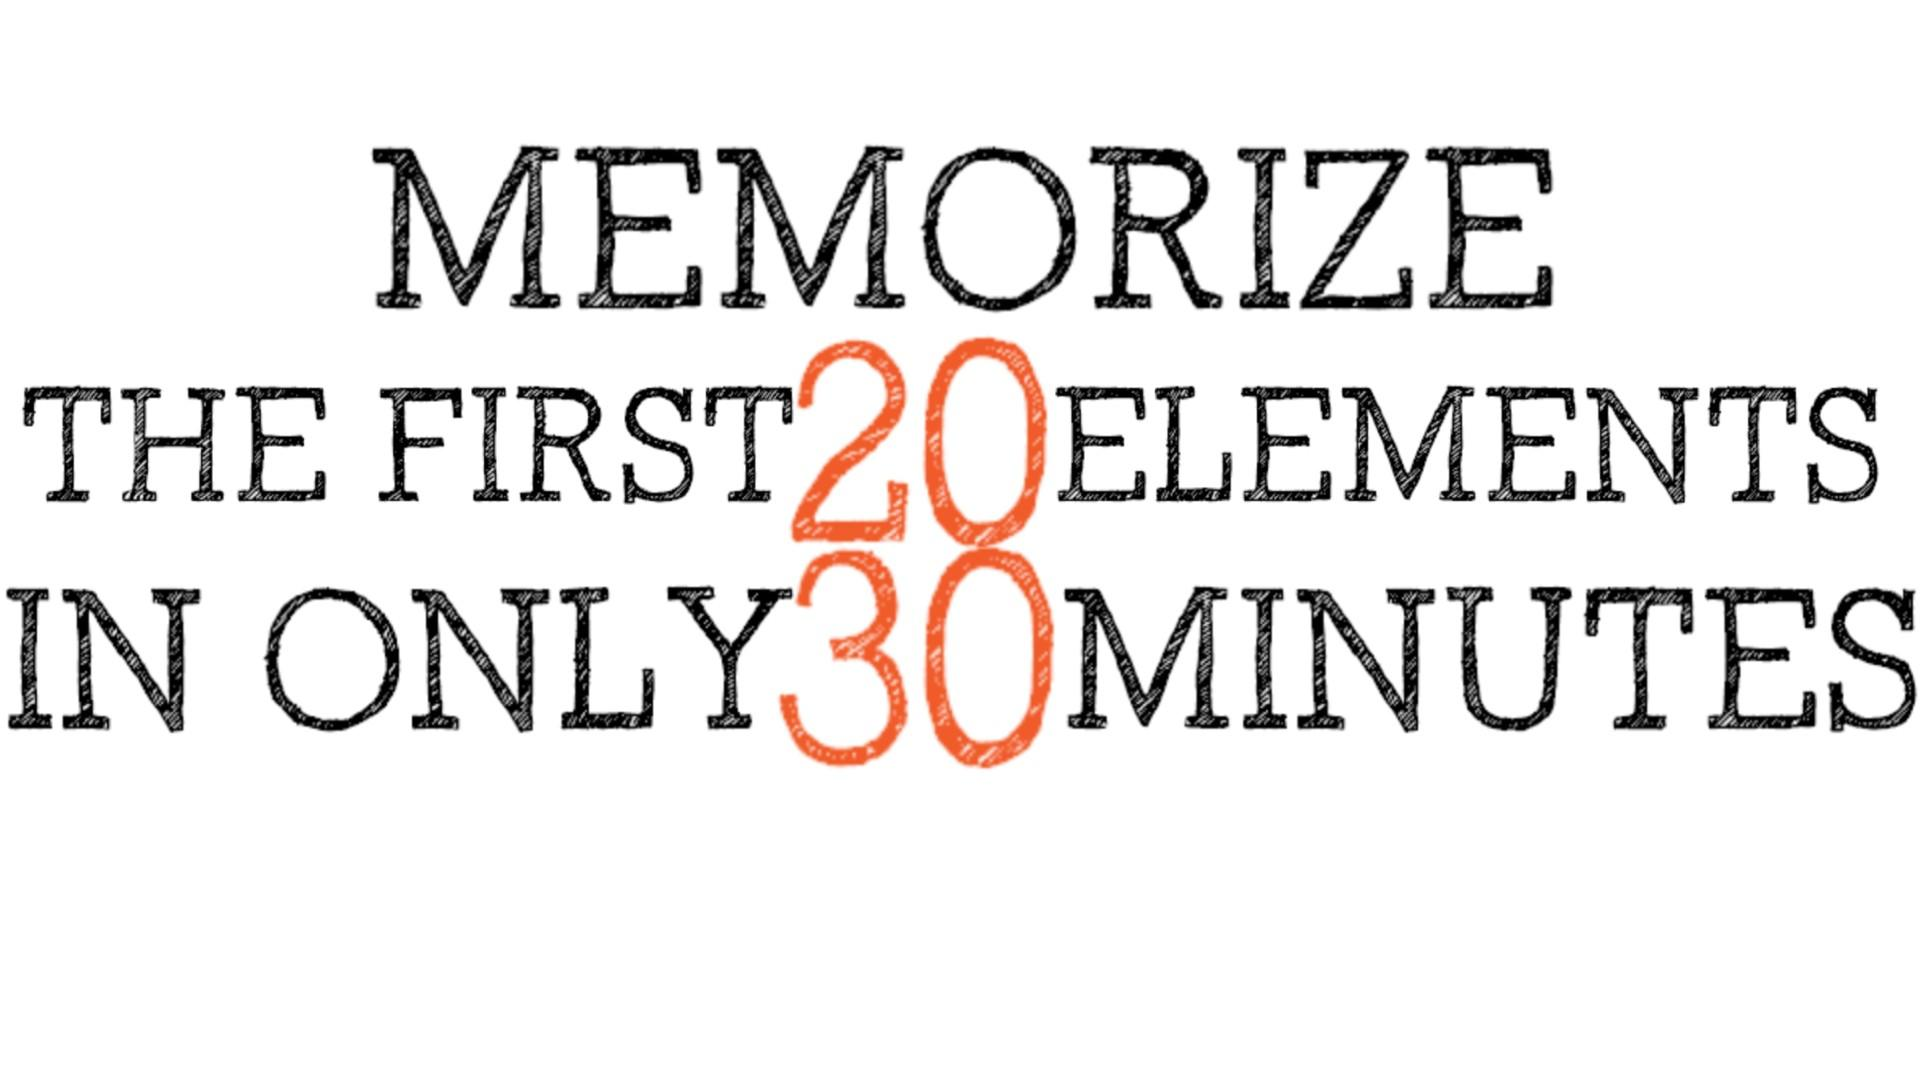 Memorize The First 20 Elements Of The Periodic Table